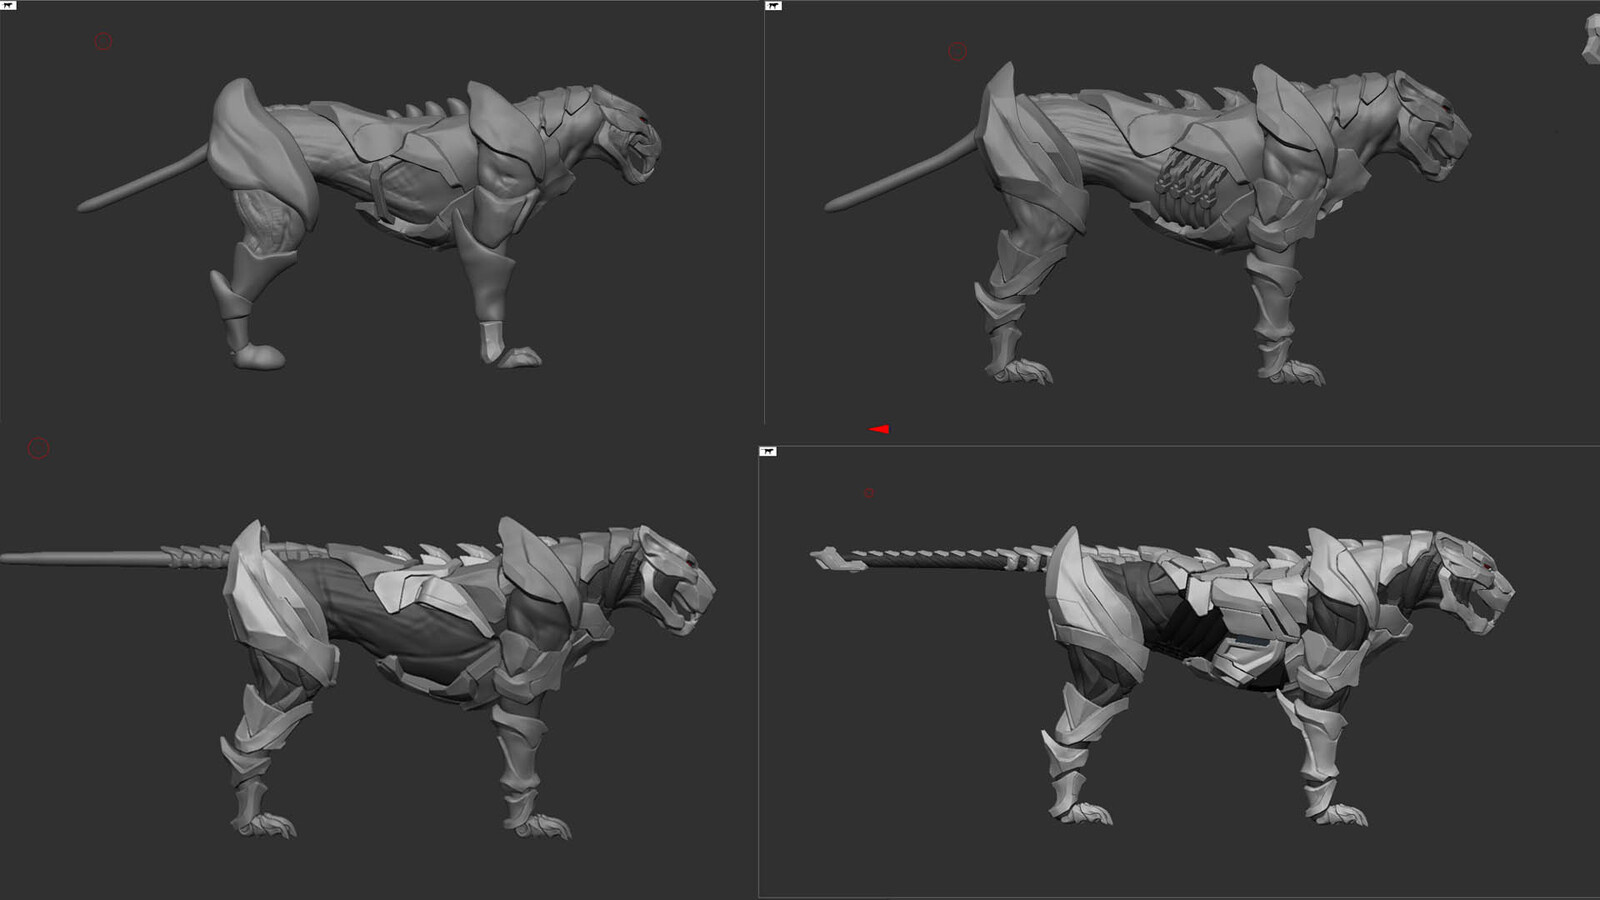 Zbrush progression. In hindsight the breakup was way too soon. Should've kept the mesh connected in the first stages